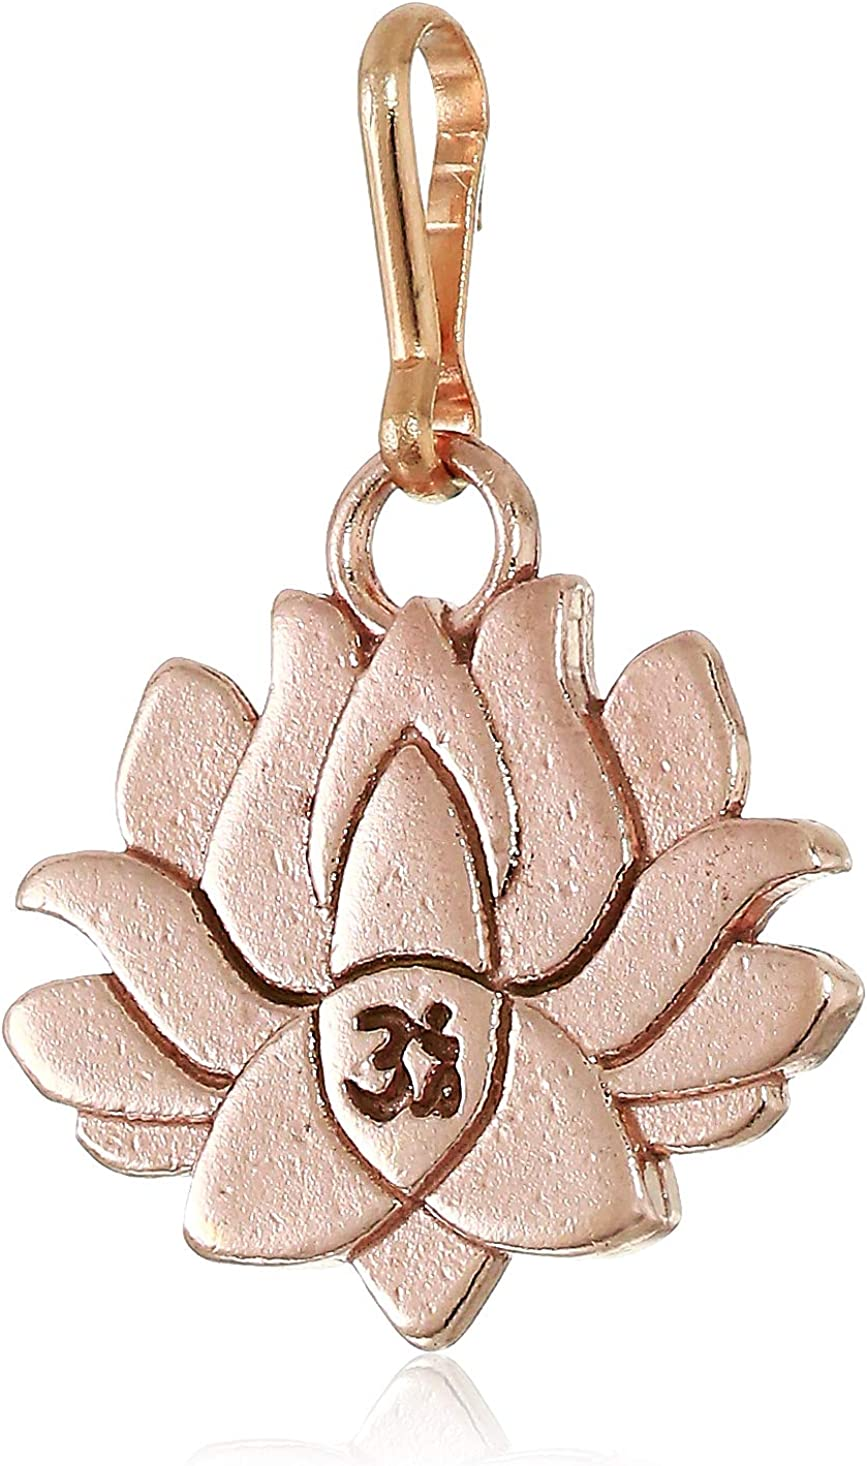 Alex and Ani Women's Lotus Peace Petals Charm 14KT Rose Gold Plated, Expandable